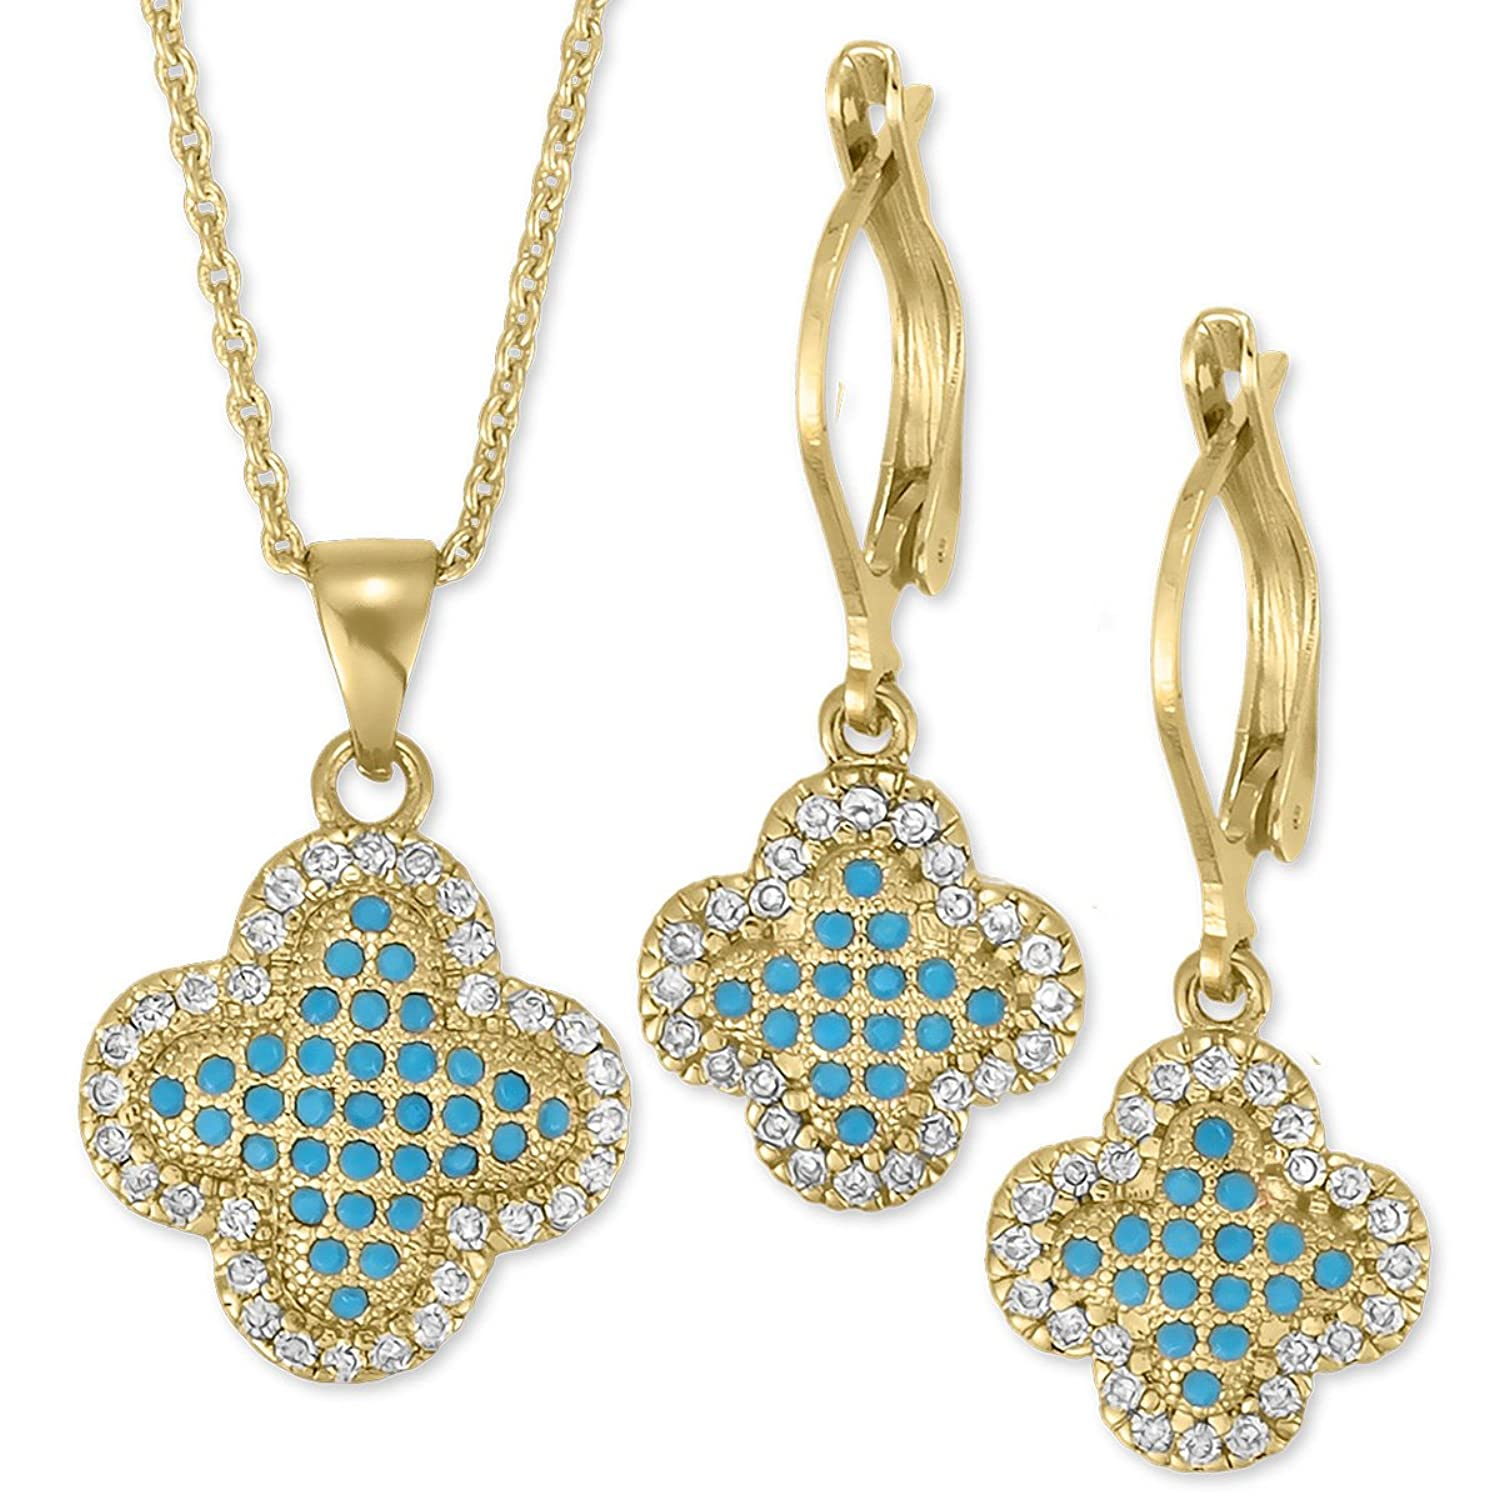 Orotex Inc. 14K Yellow Gold Plated Cubic Zirconia and Teal Clover Leaf Set For Women